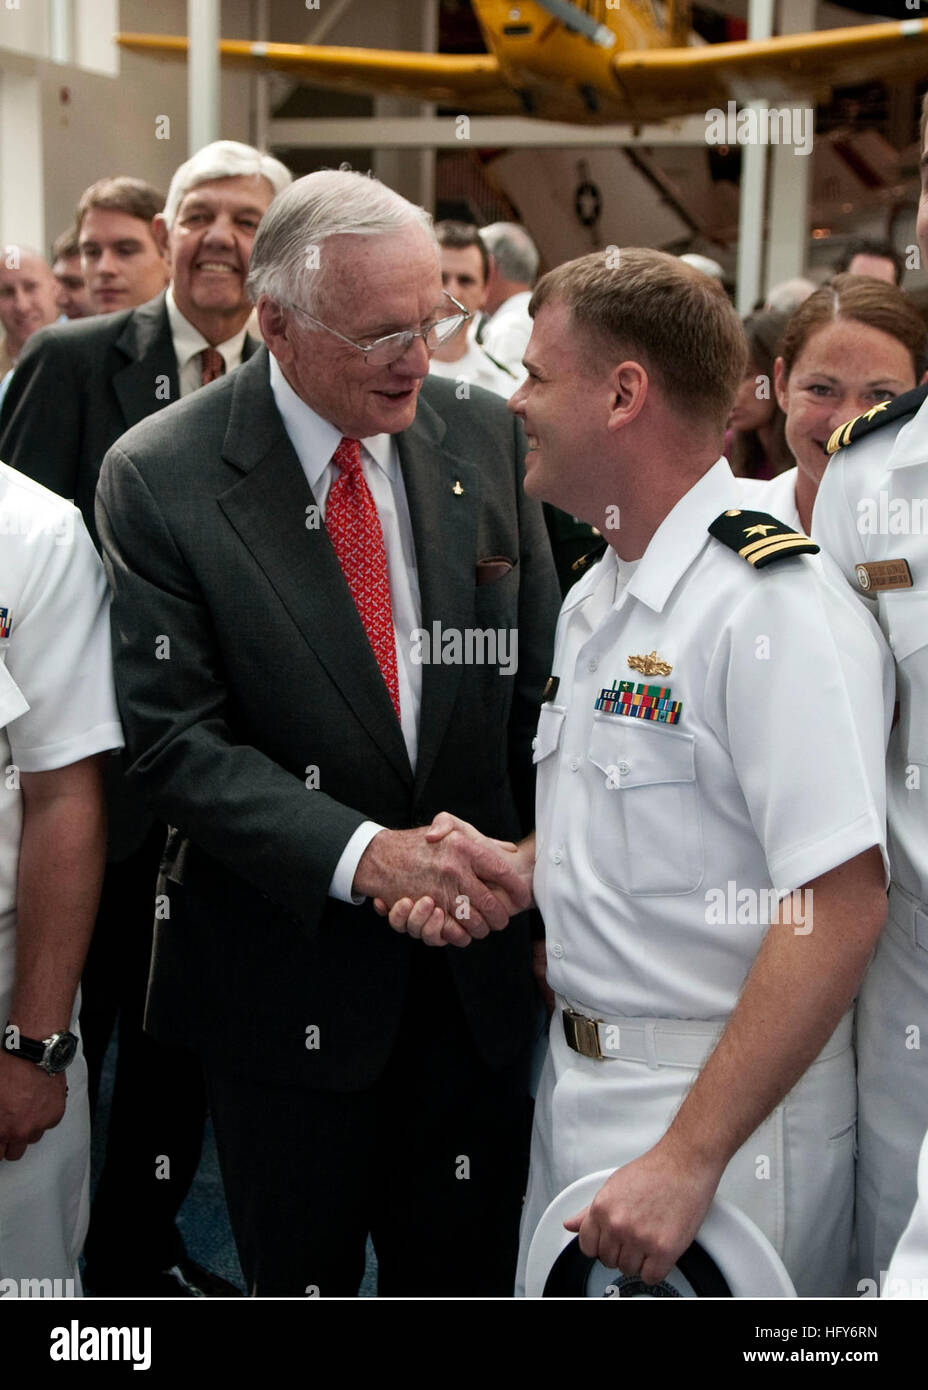 100514-N-3852A-004 PENSACOLA, Fla. (May 14, 2010) Former astronaut Neil Armstrong is congratulated by Lt. Gavin - Stock Image